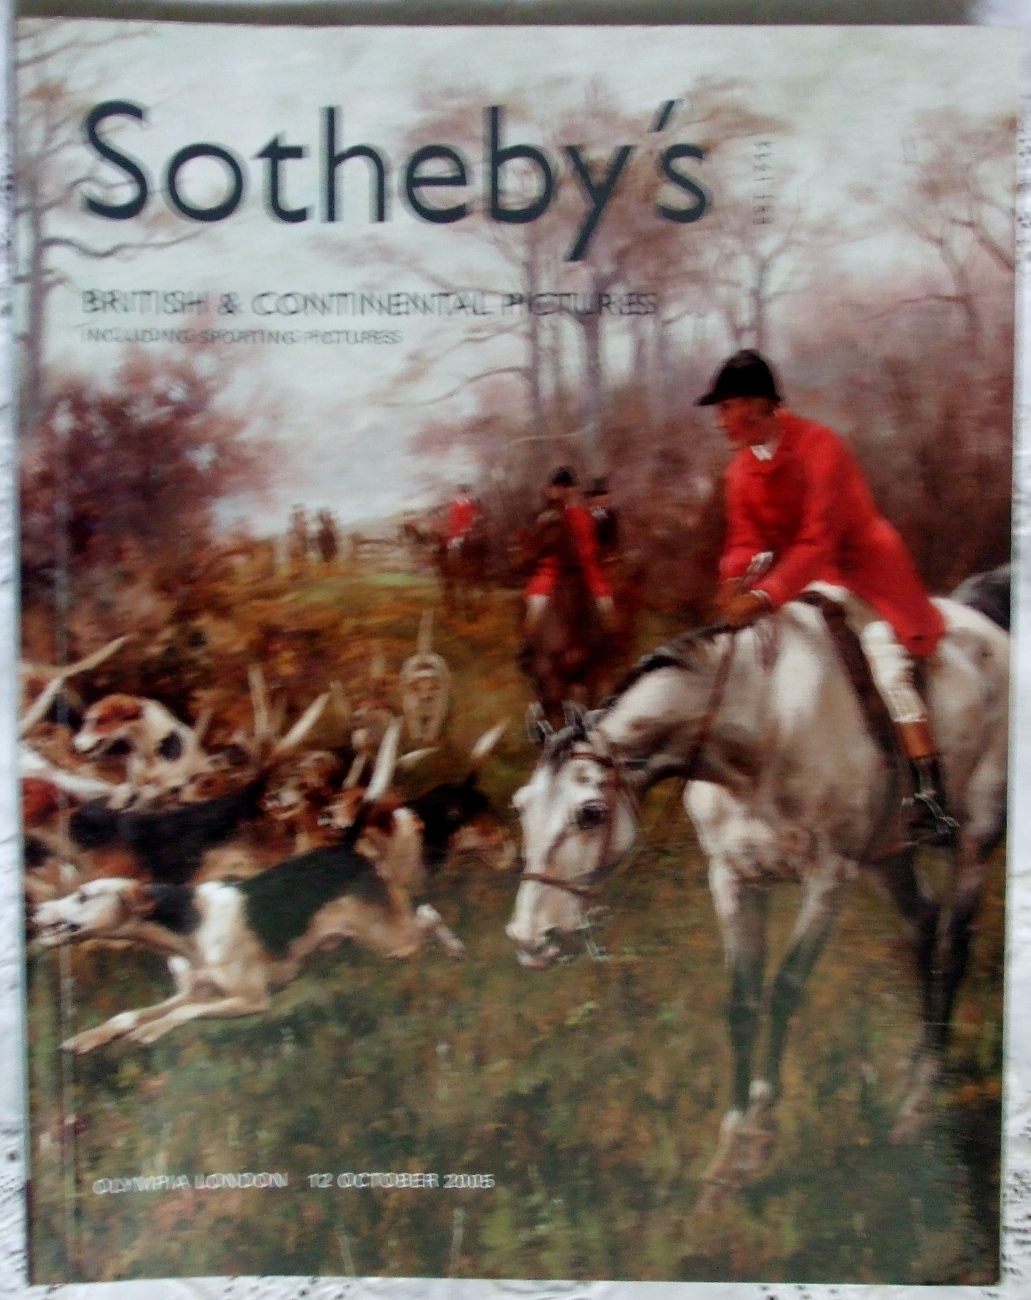 Sothebys British And Continental Pictures Including Sporting Pictures 12 October 2005